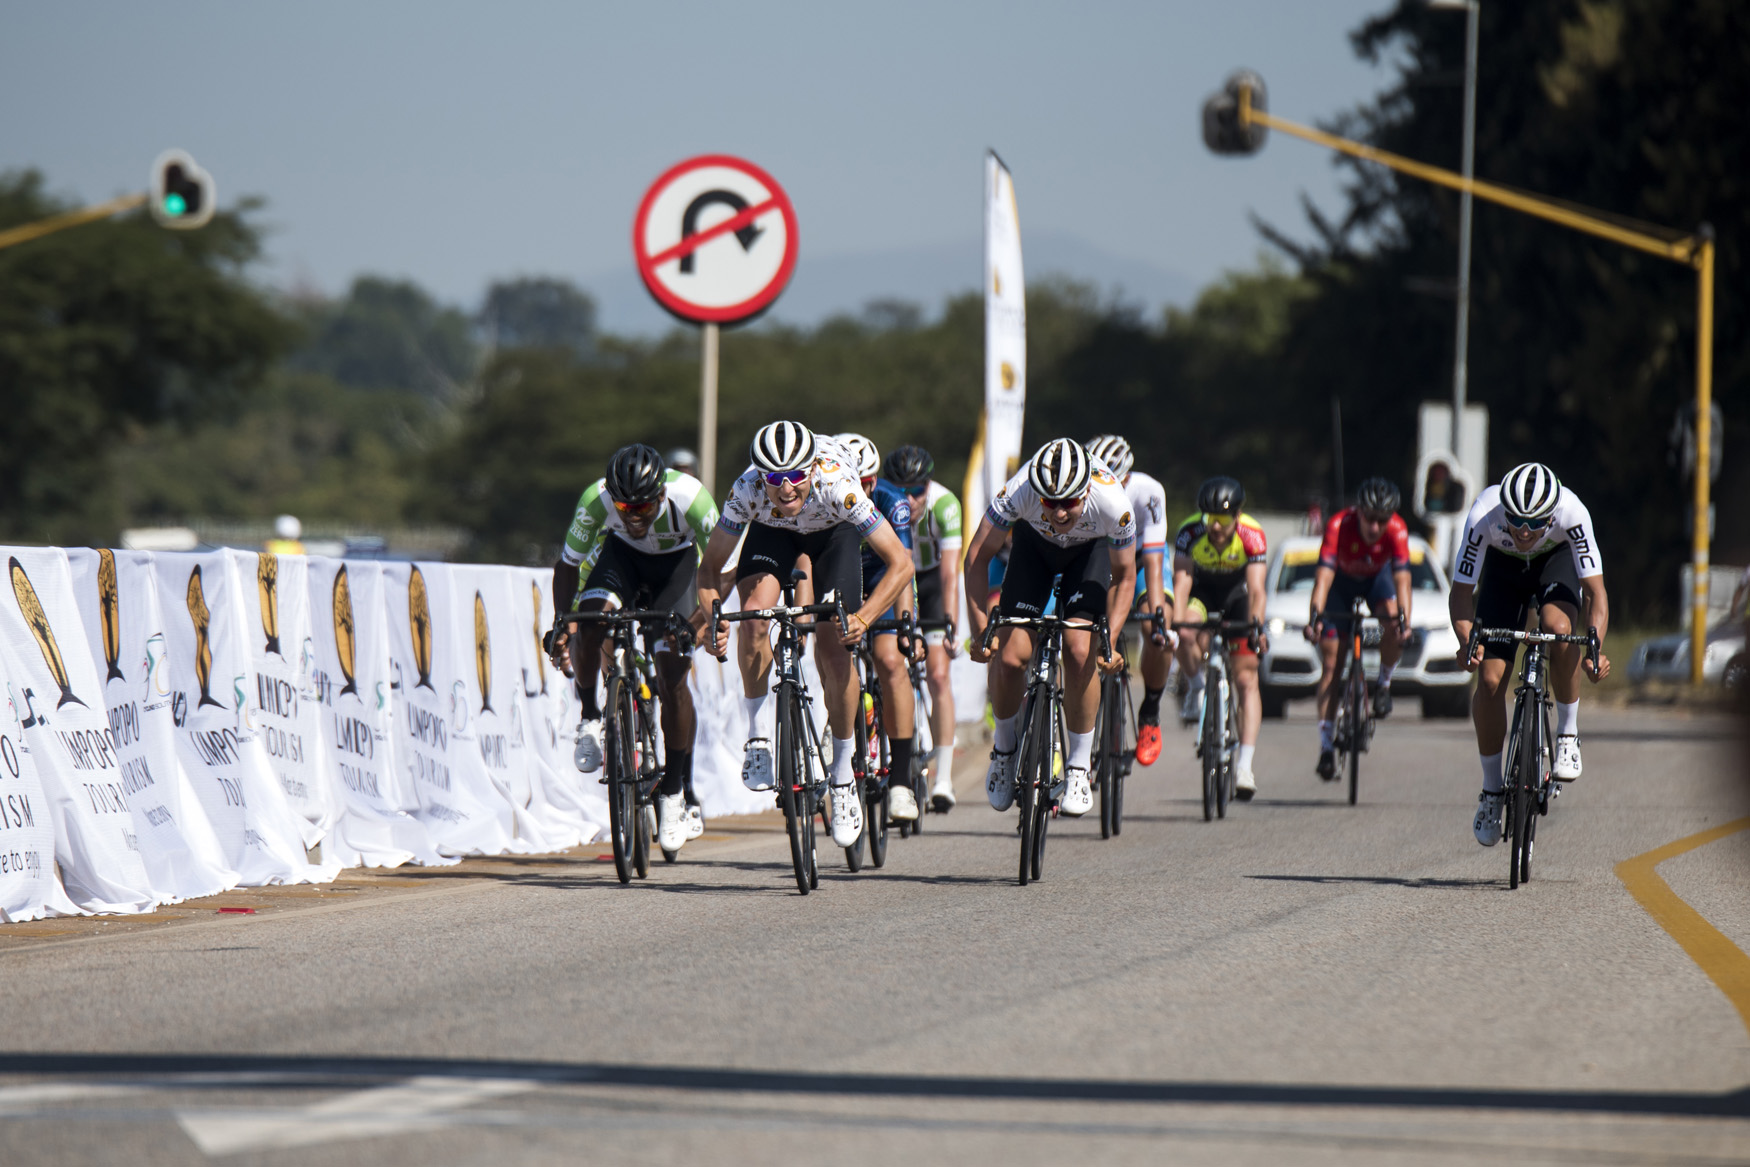 It was a tight race until the very end for Connor Brown (Team Dimension Data Continental) from Polokwane to Tzaneen on Stage 2 of the 2019 Tour de Limpopo (UCI 2.2) from 14-18 May © Tour de Limpopo/Andrew Mc Fadden